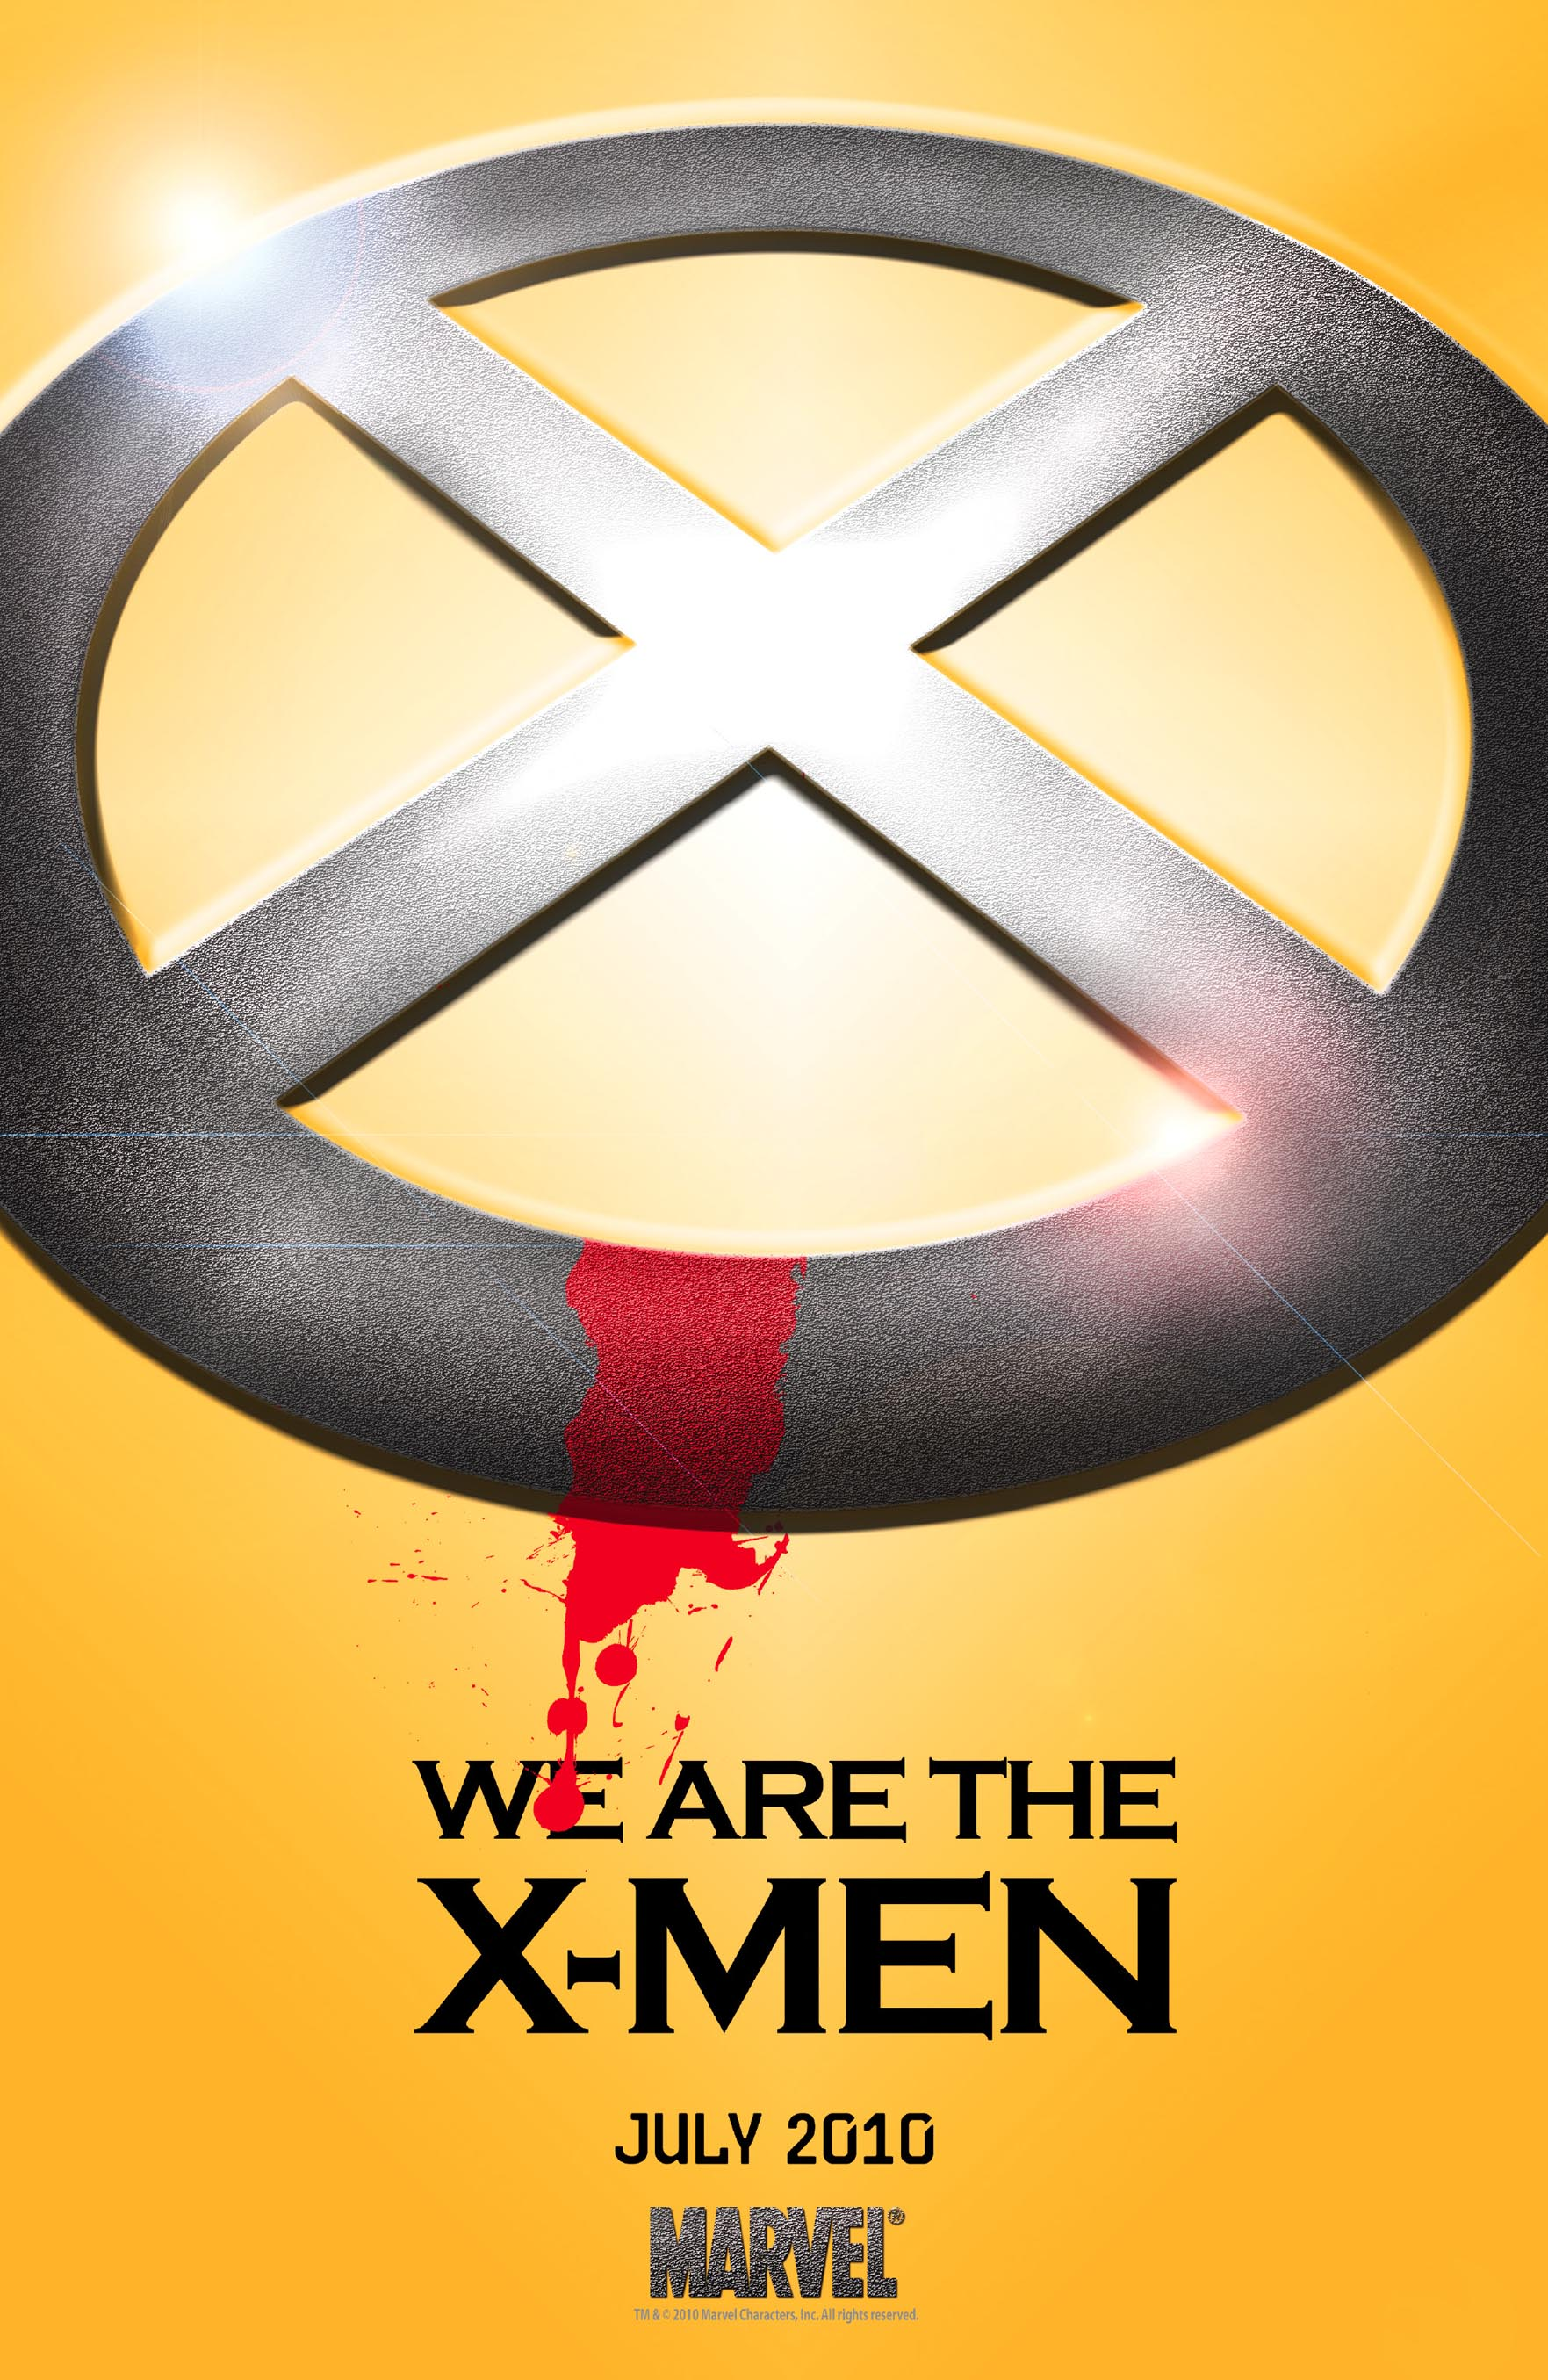 We are the X-Men